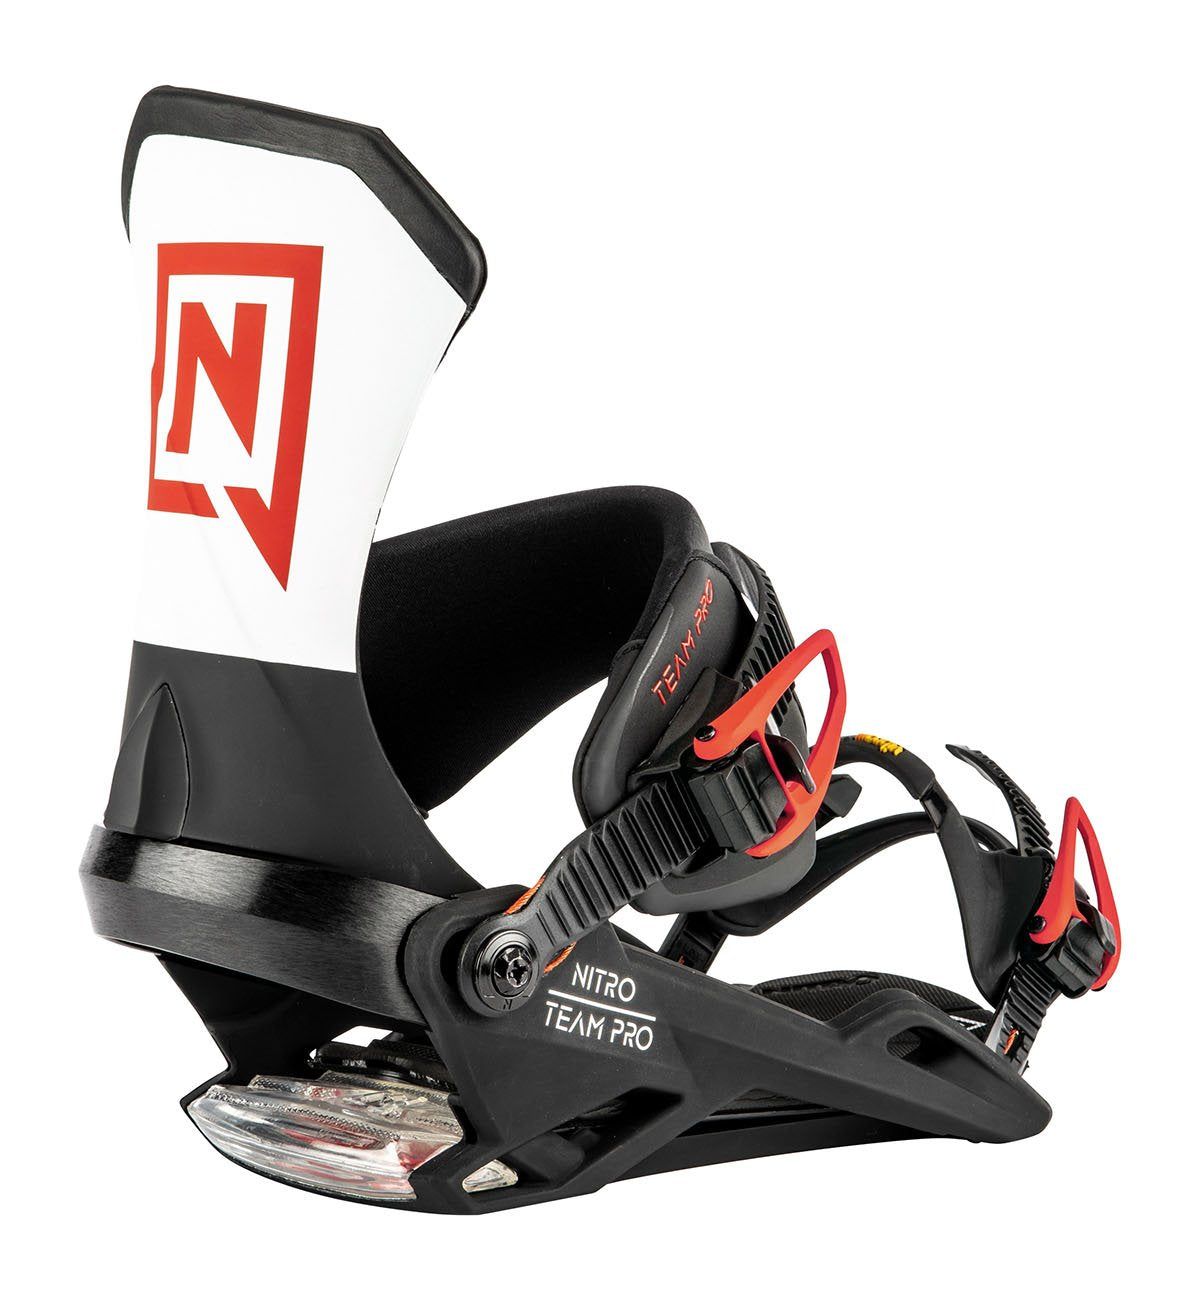 Nitro Team Pro Snowboard Bindings 2020